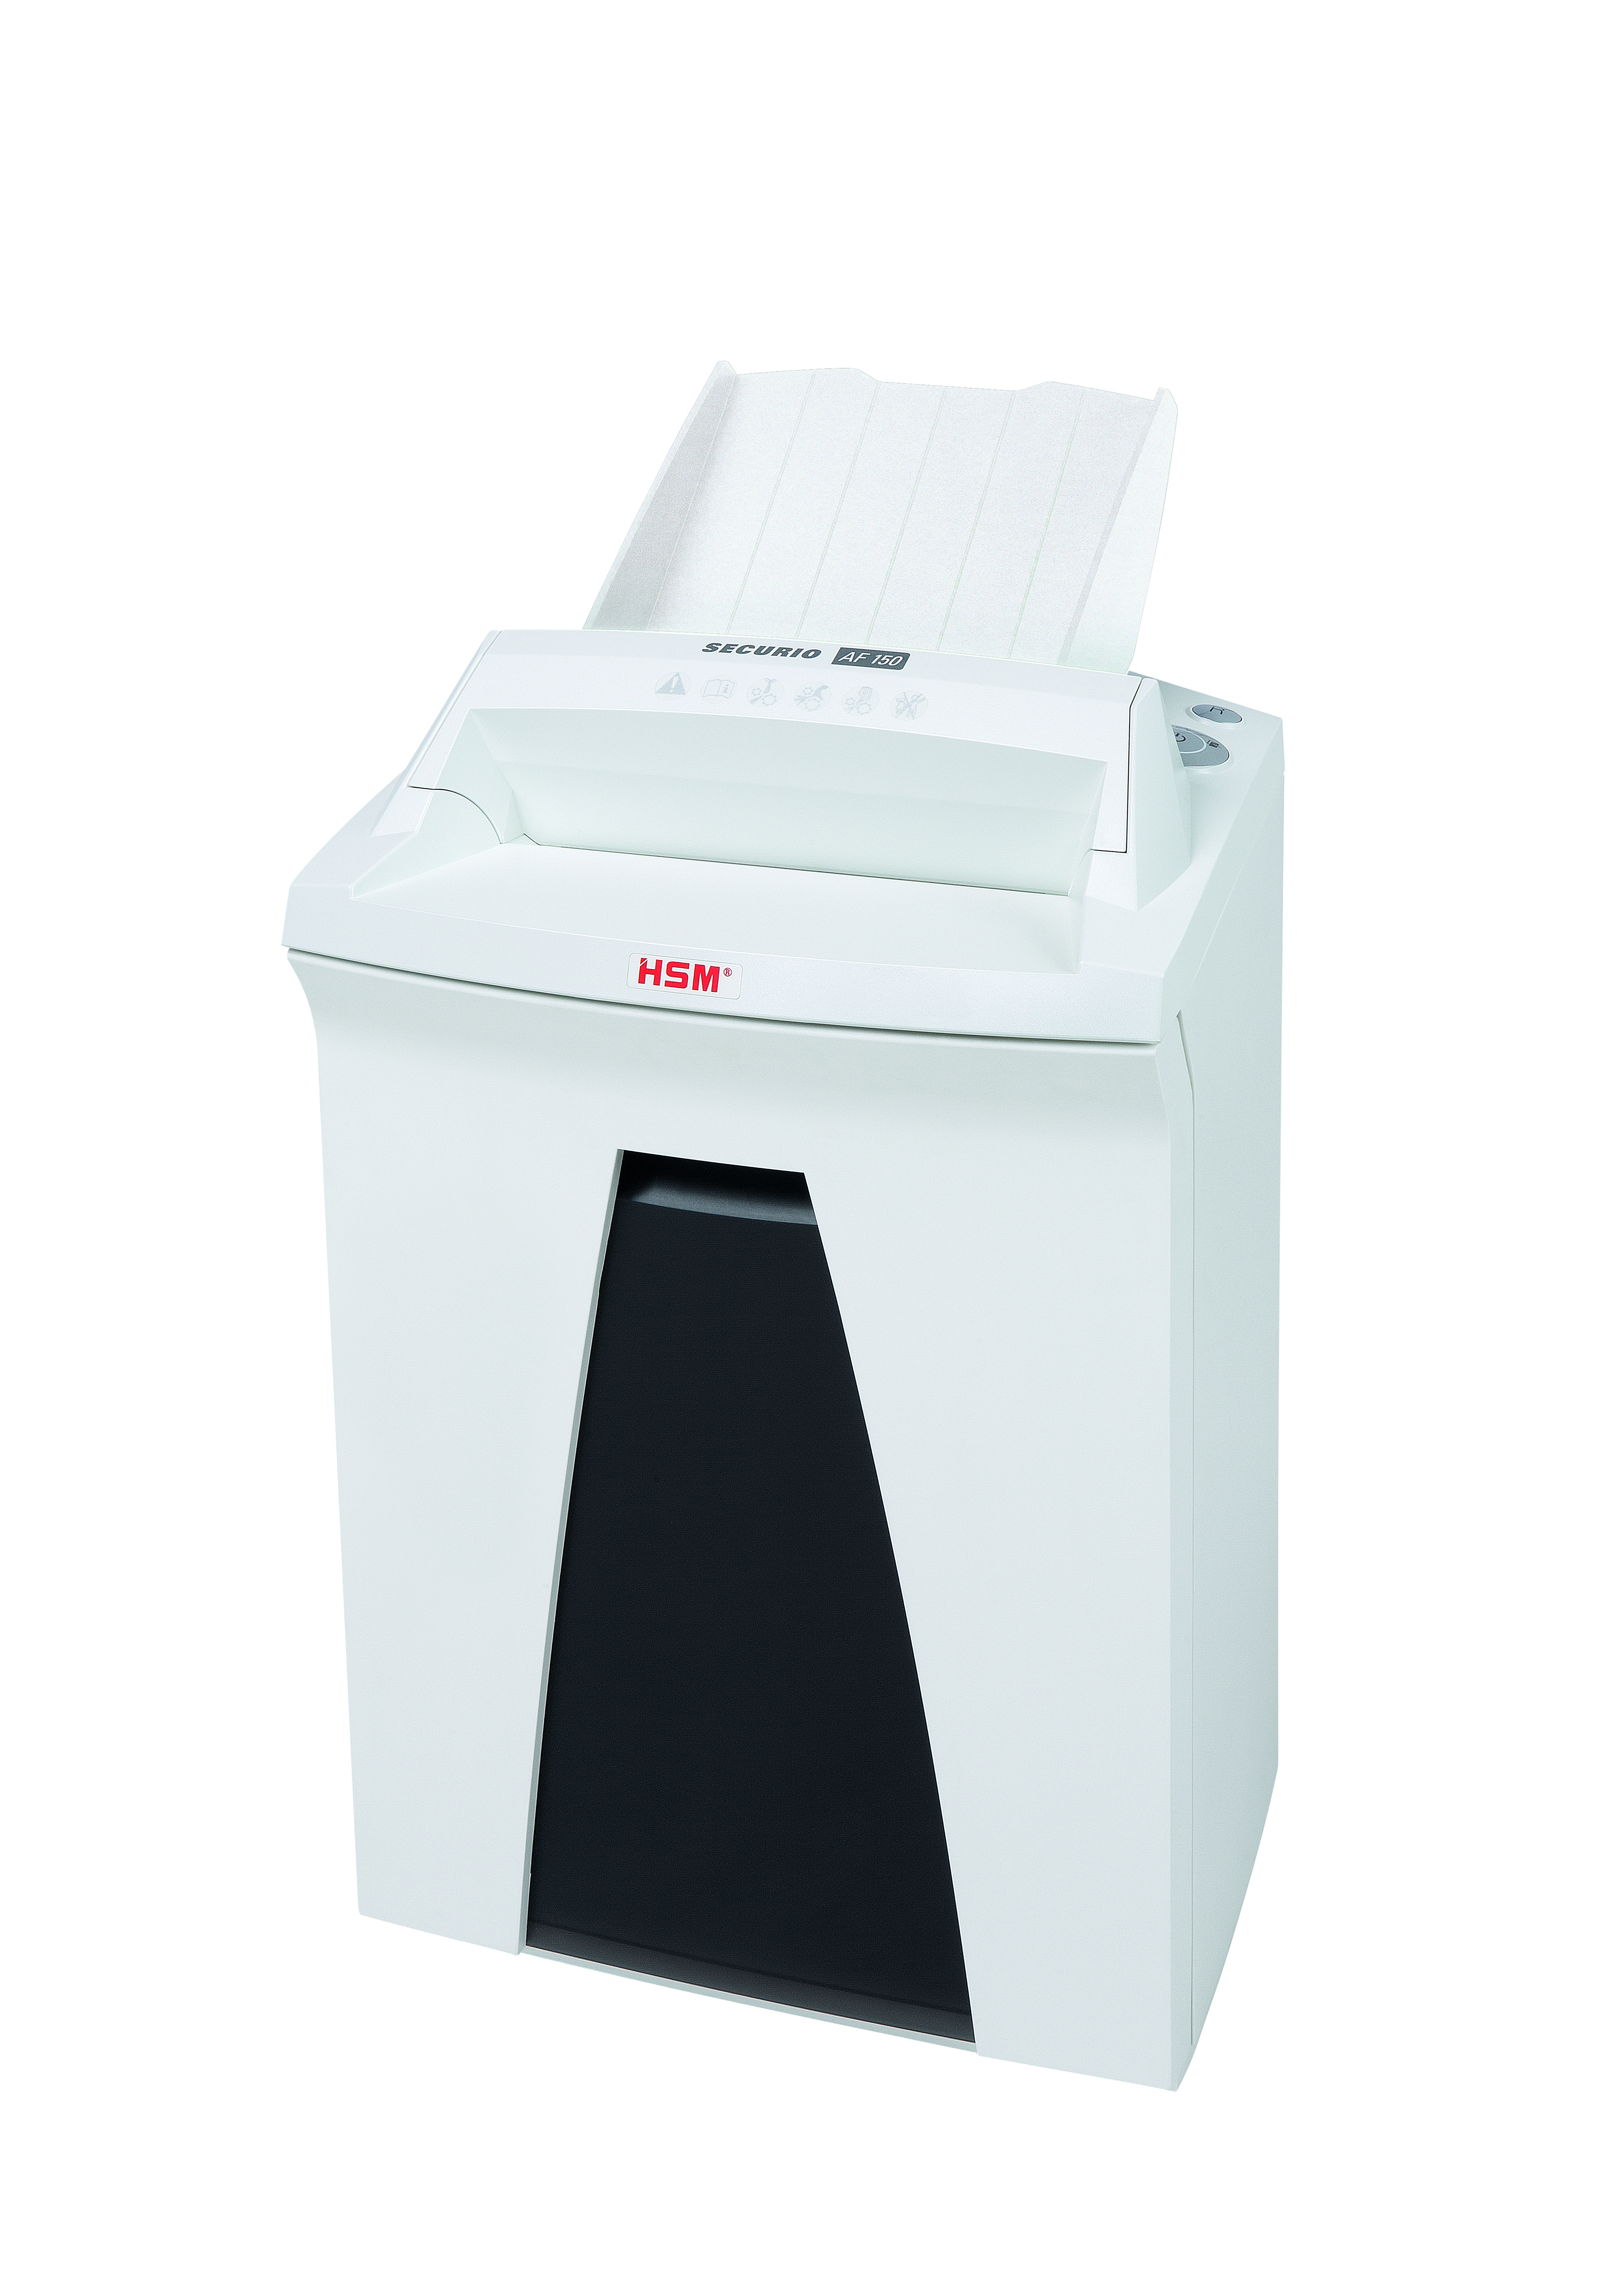 Securio AF150 autofeed shredder P4 34 litre bin